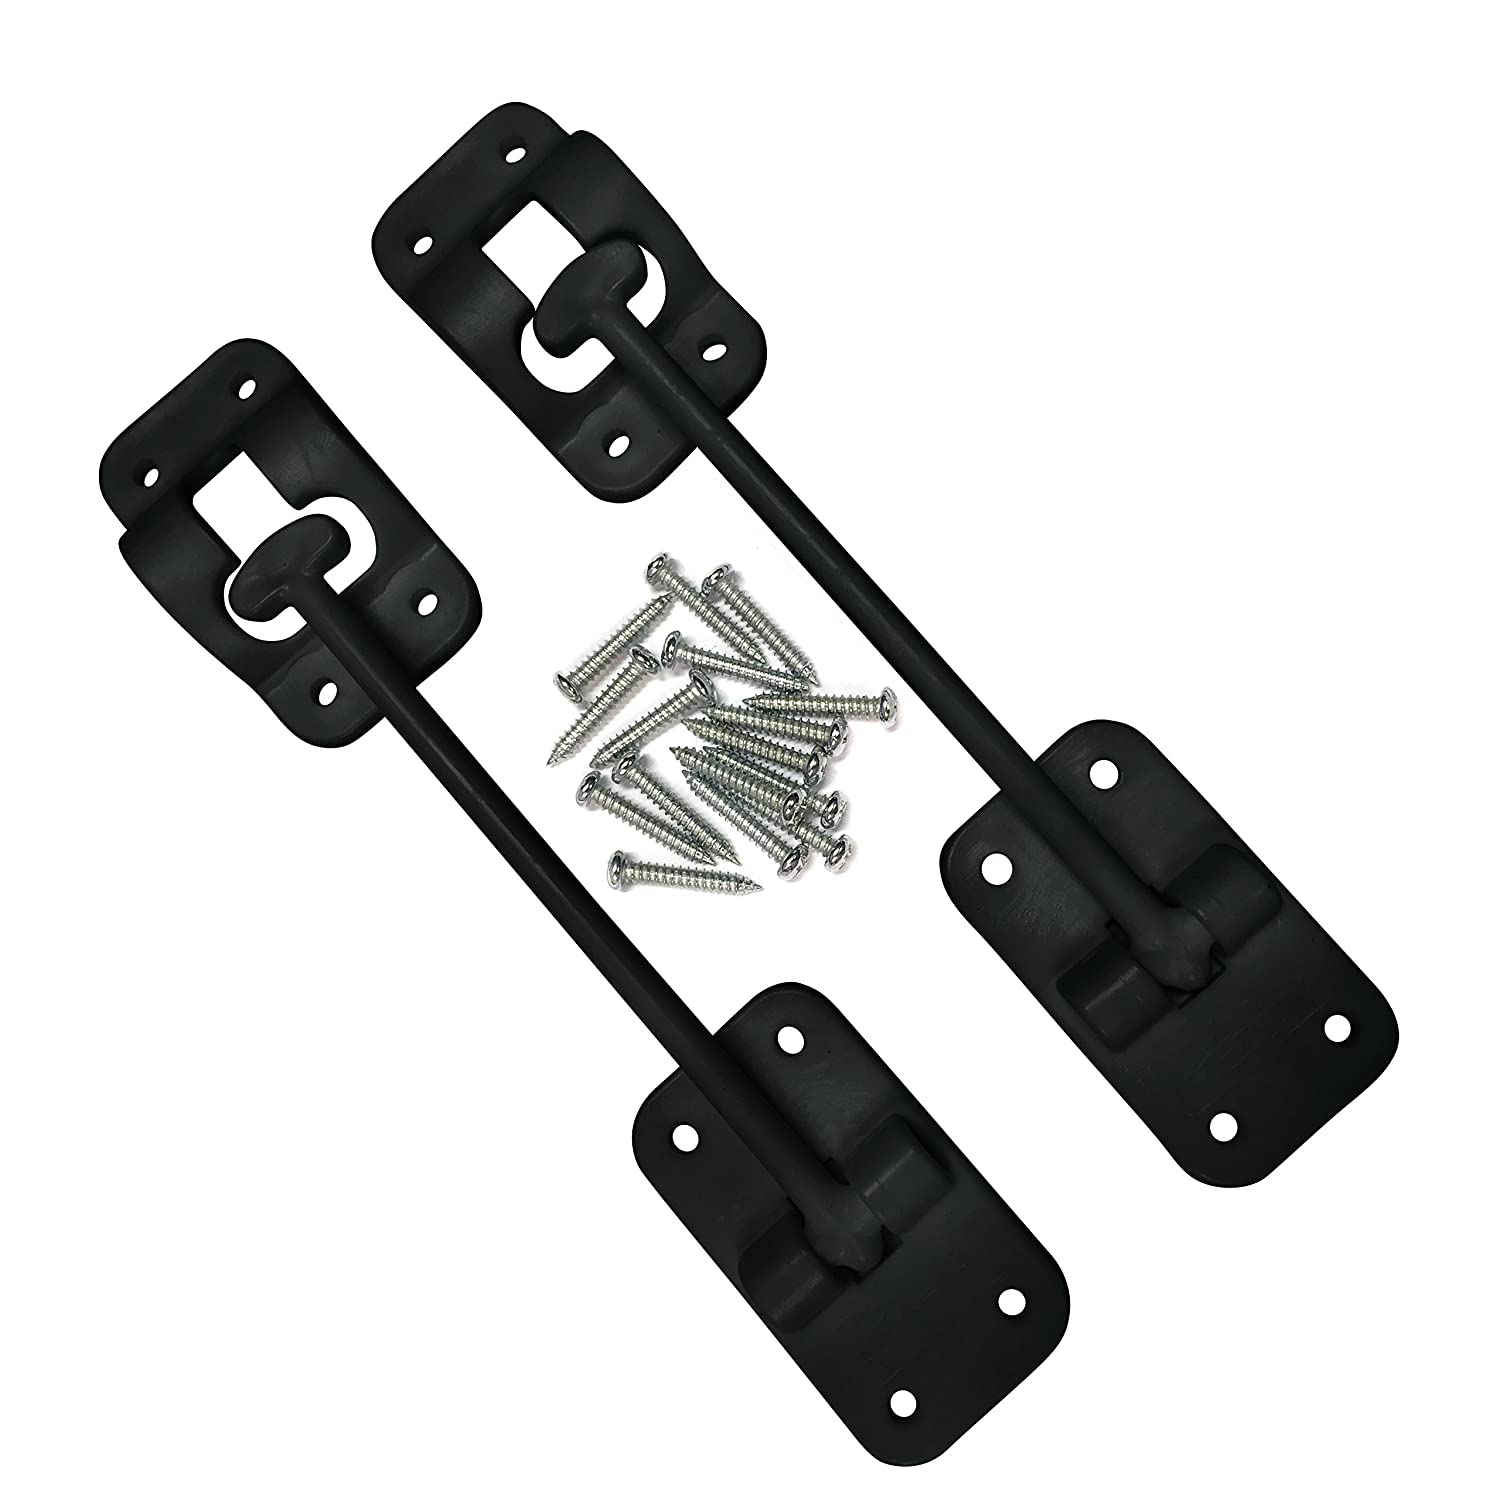 Black 2-Piece Motor Home Cargo Trailer Trailer CampN T-Style 3 1//2 Door Latch-Holder-Catch with Hardware for RV Camper OEM Replacement